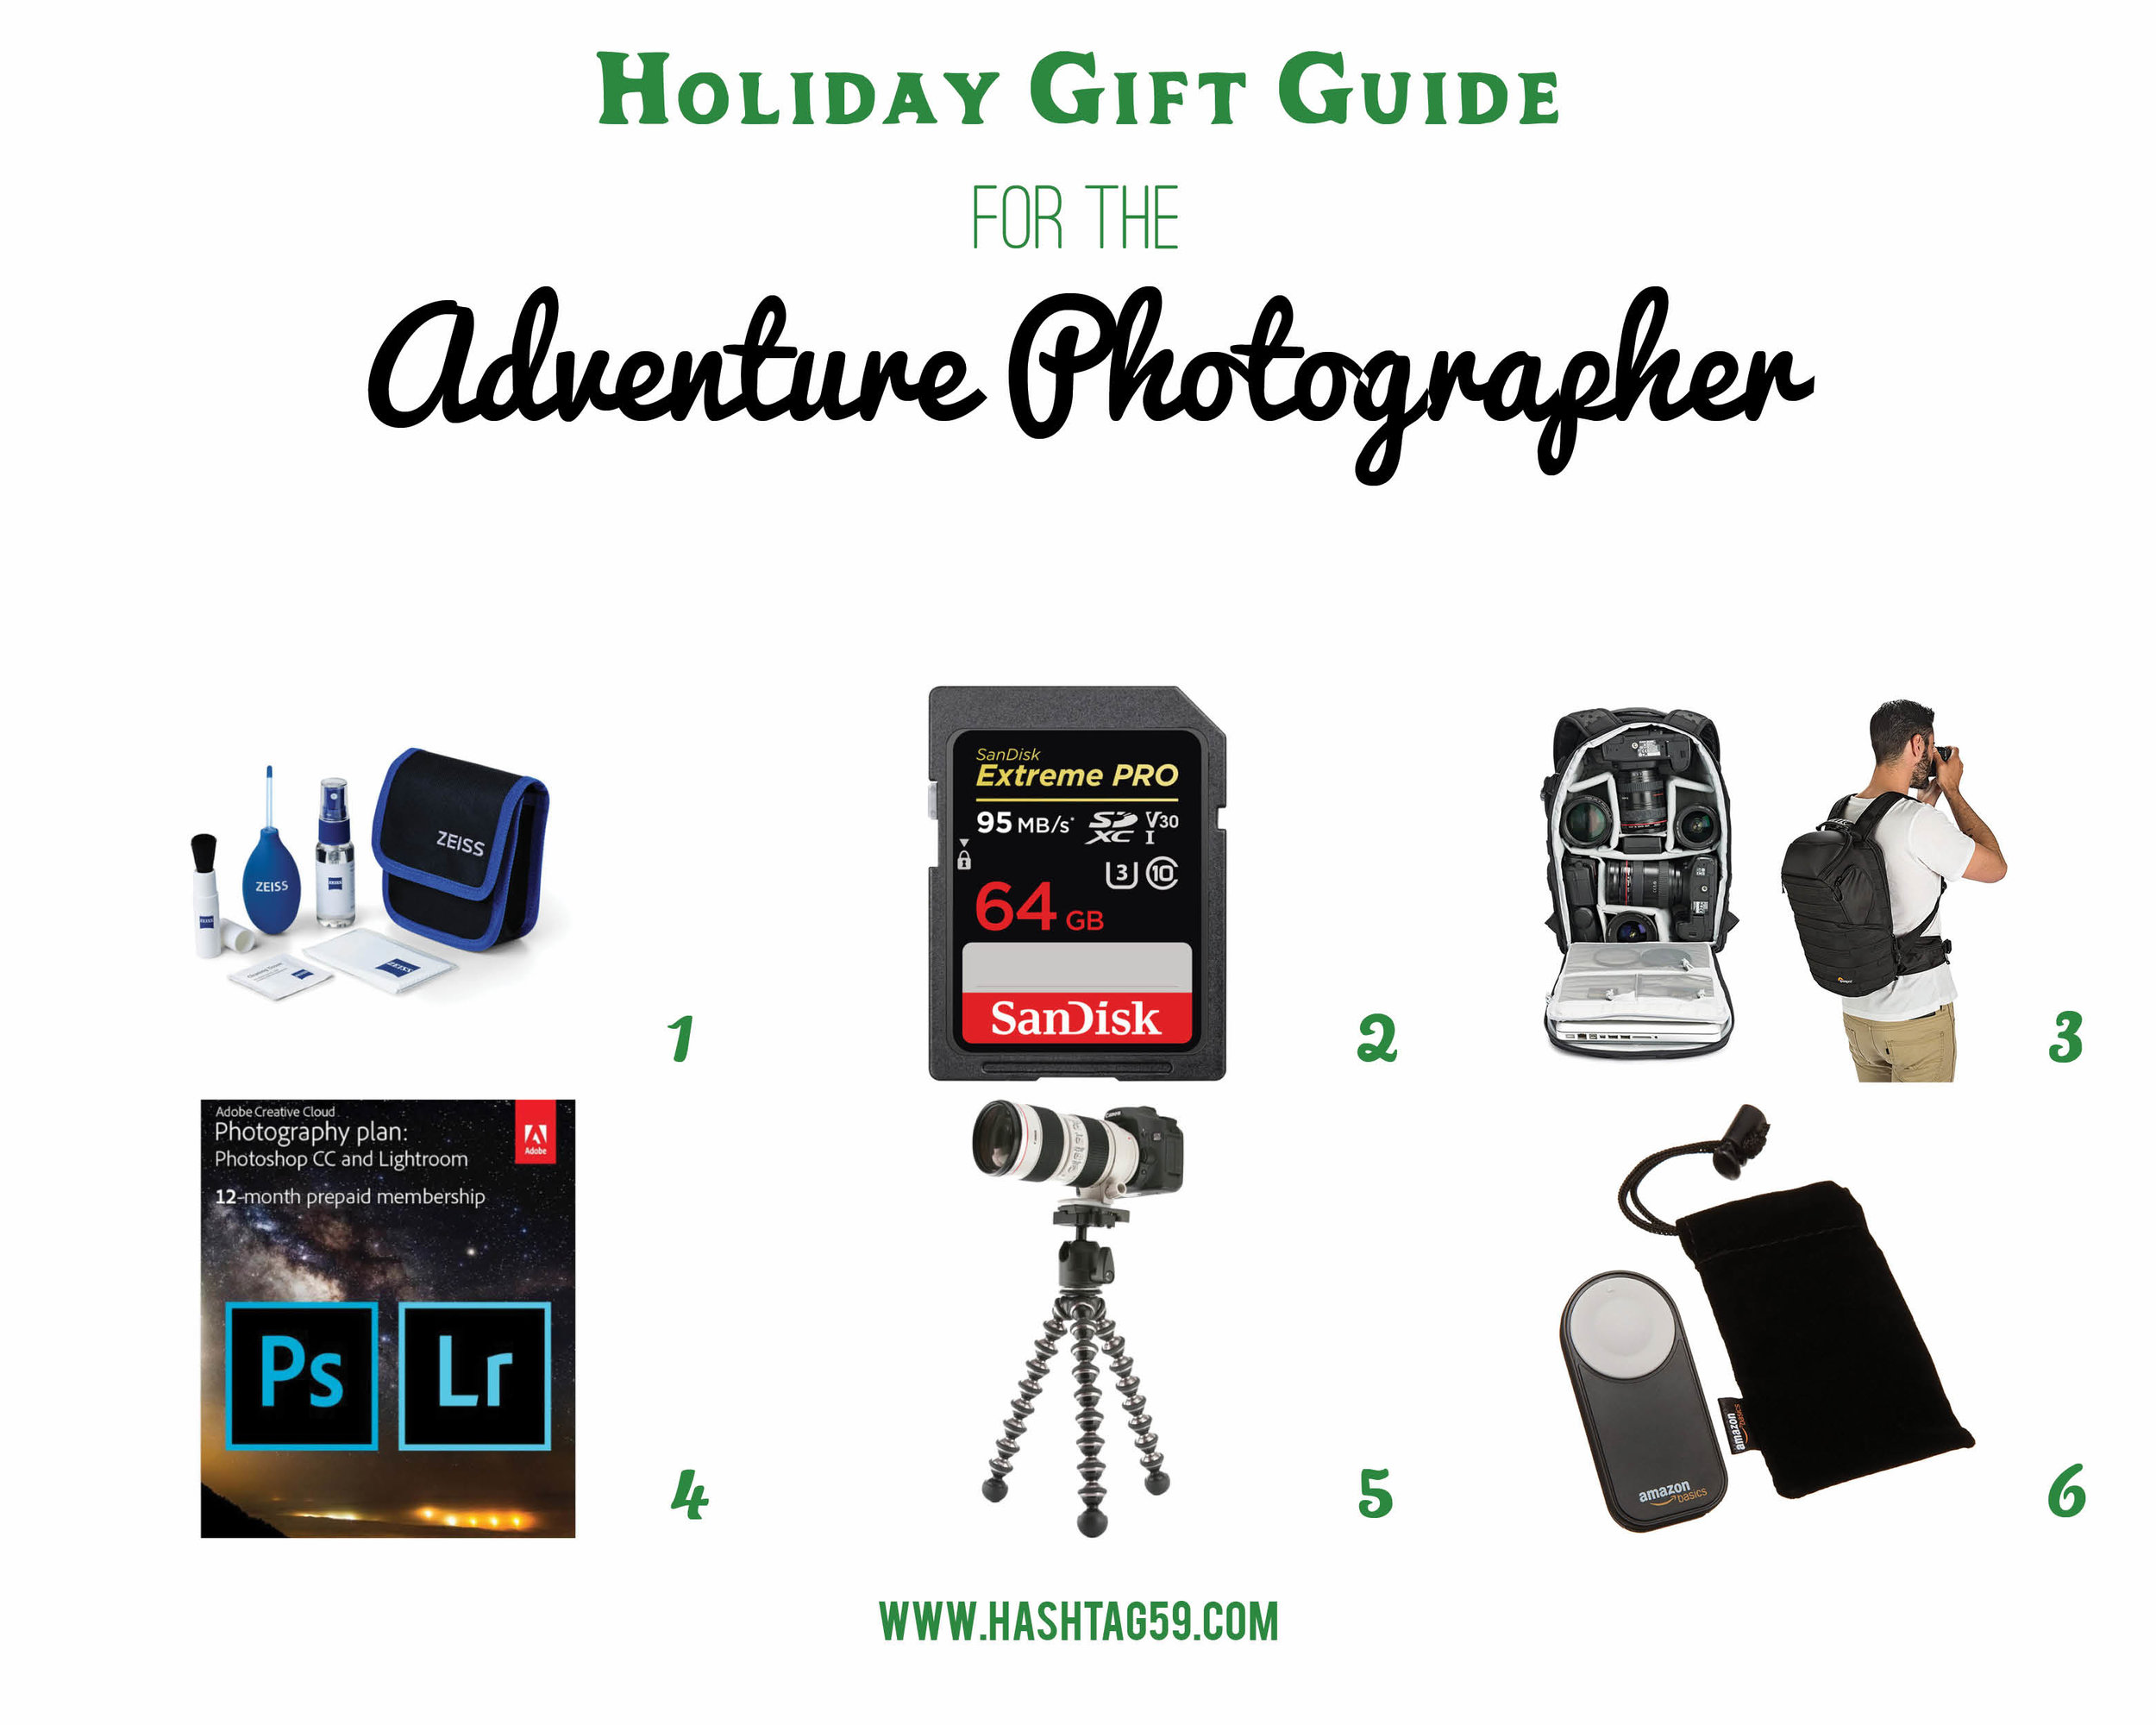 Holiday Gift Guide_Adventure Photographer.jpg